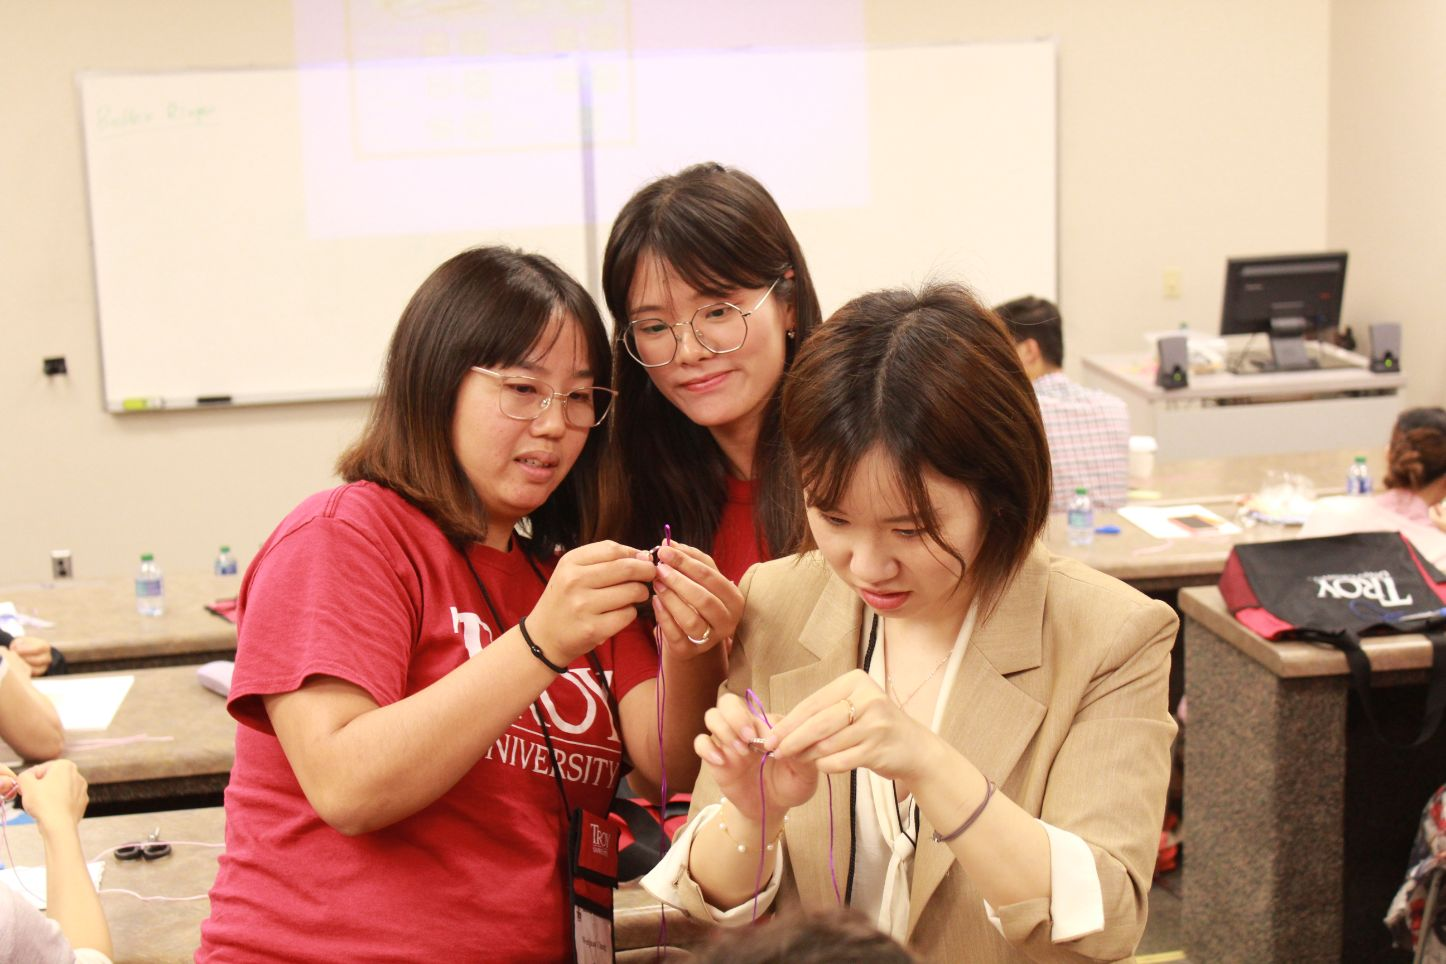 The teachers learn how to make Chinese crafts out of yarn and key chains.